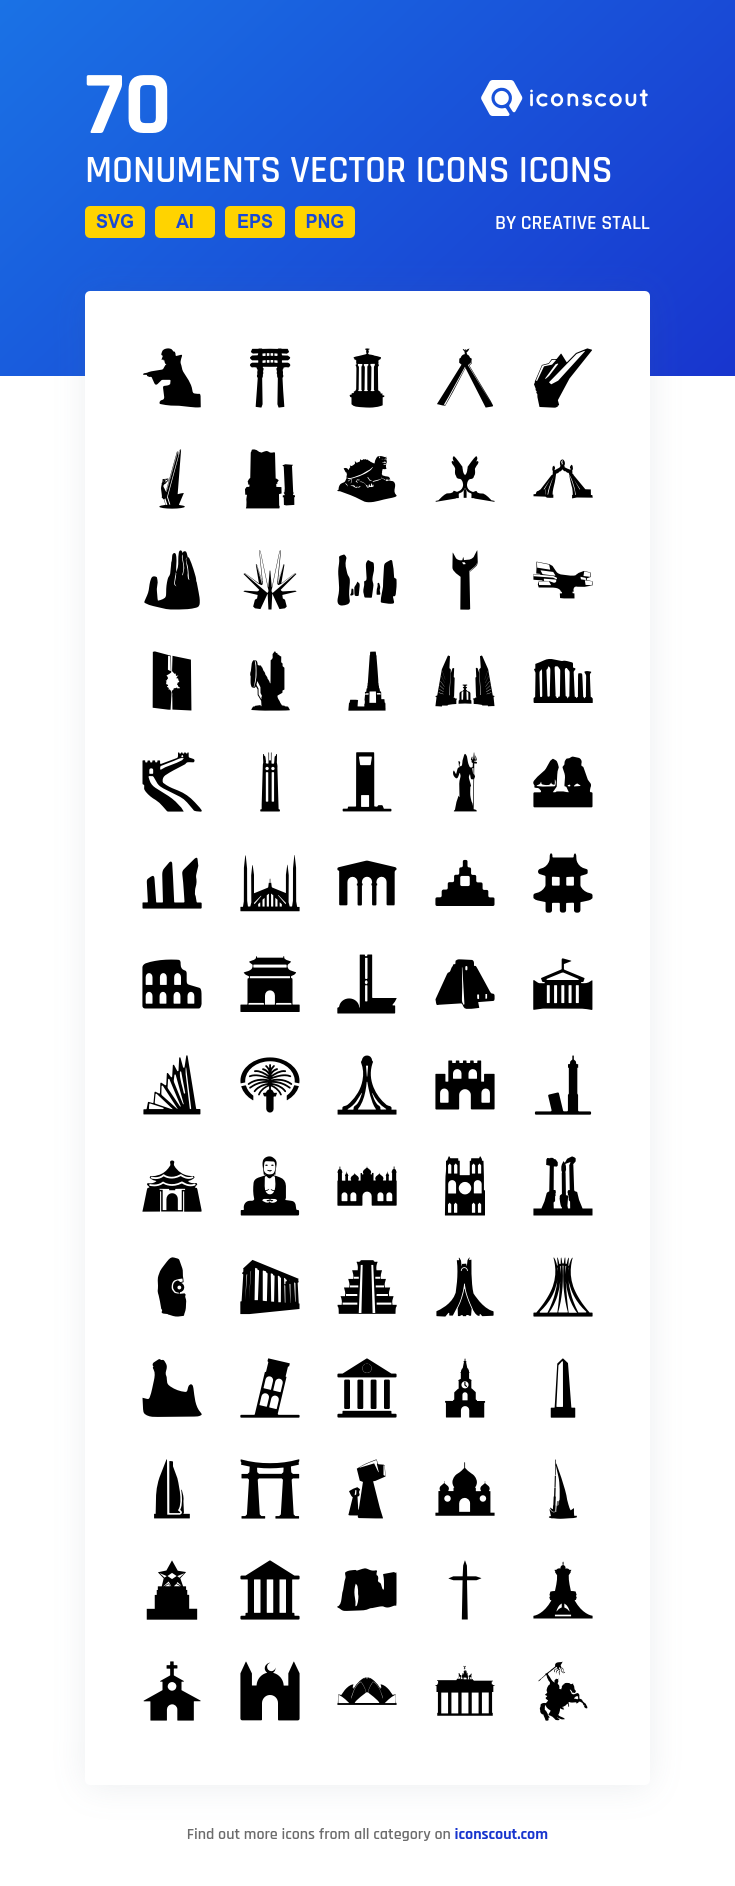 Download Monuments Vector Icons Icon pack Available in